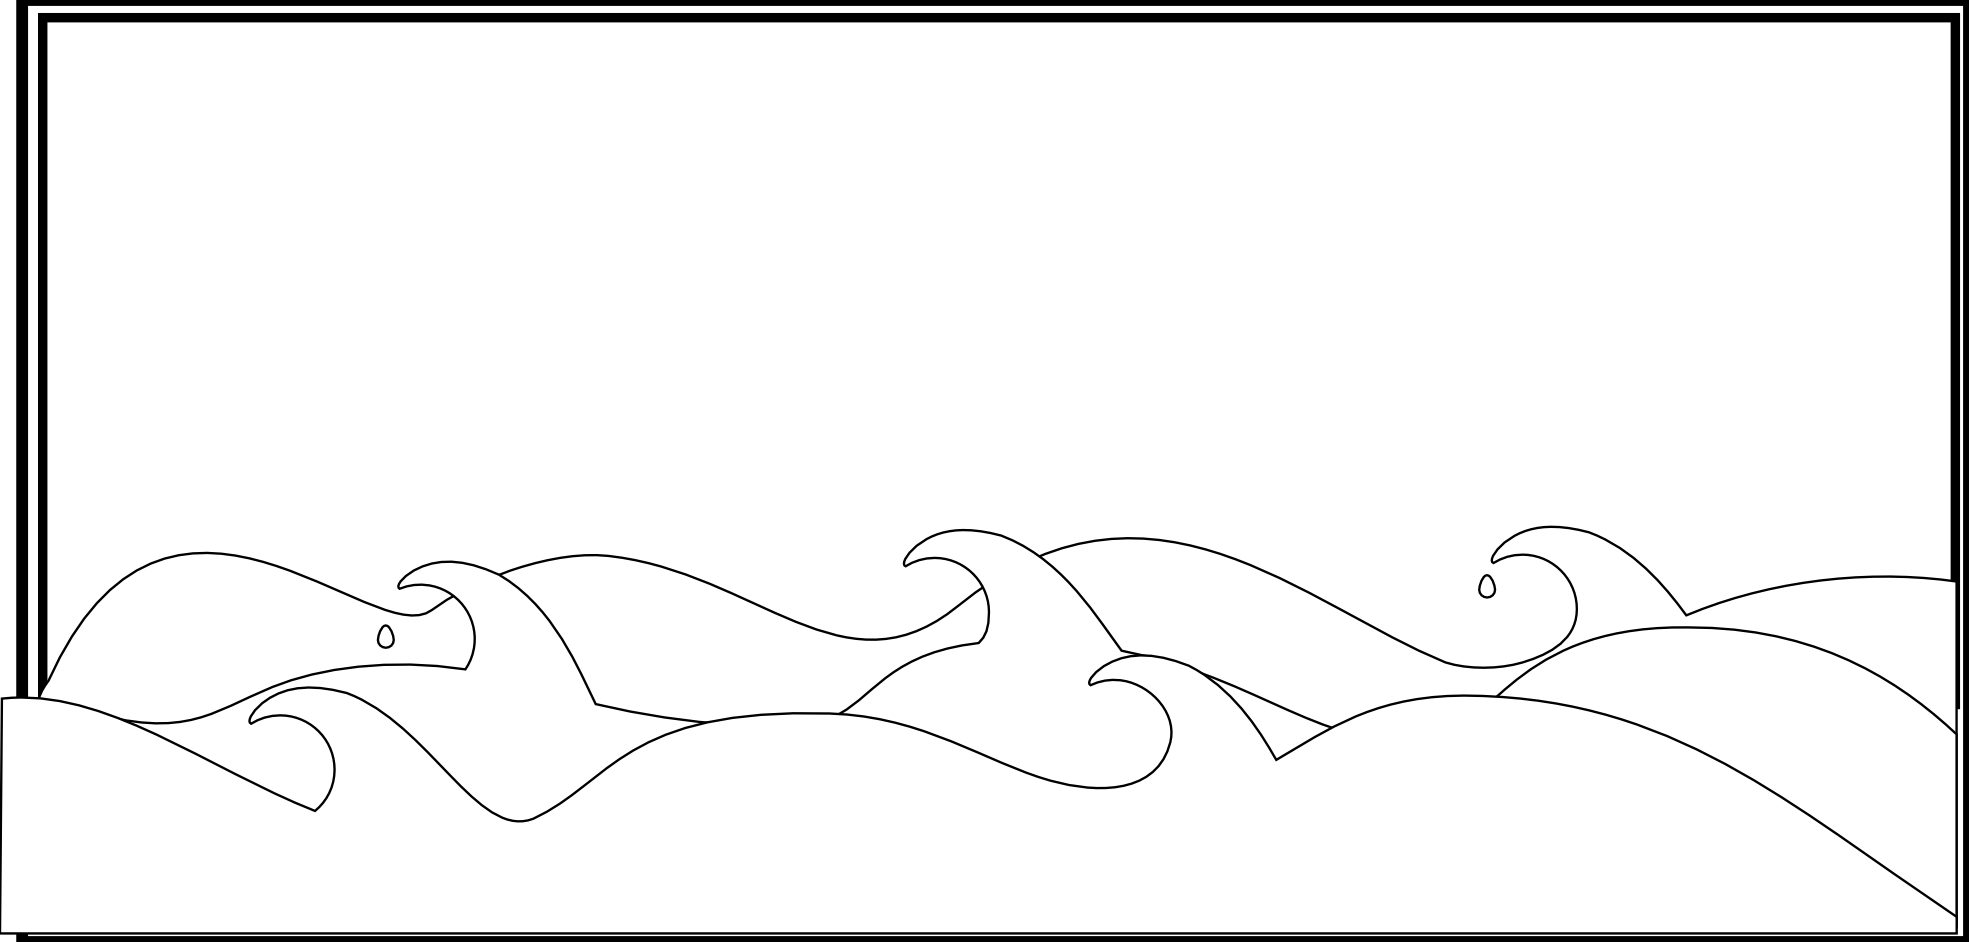 Waves black and white sea waves clipart black and white.